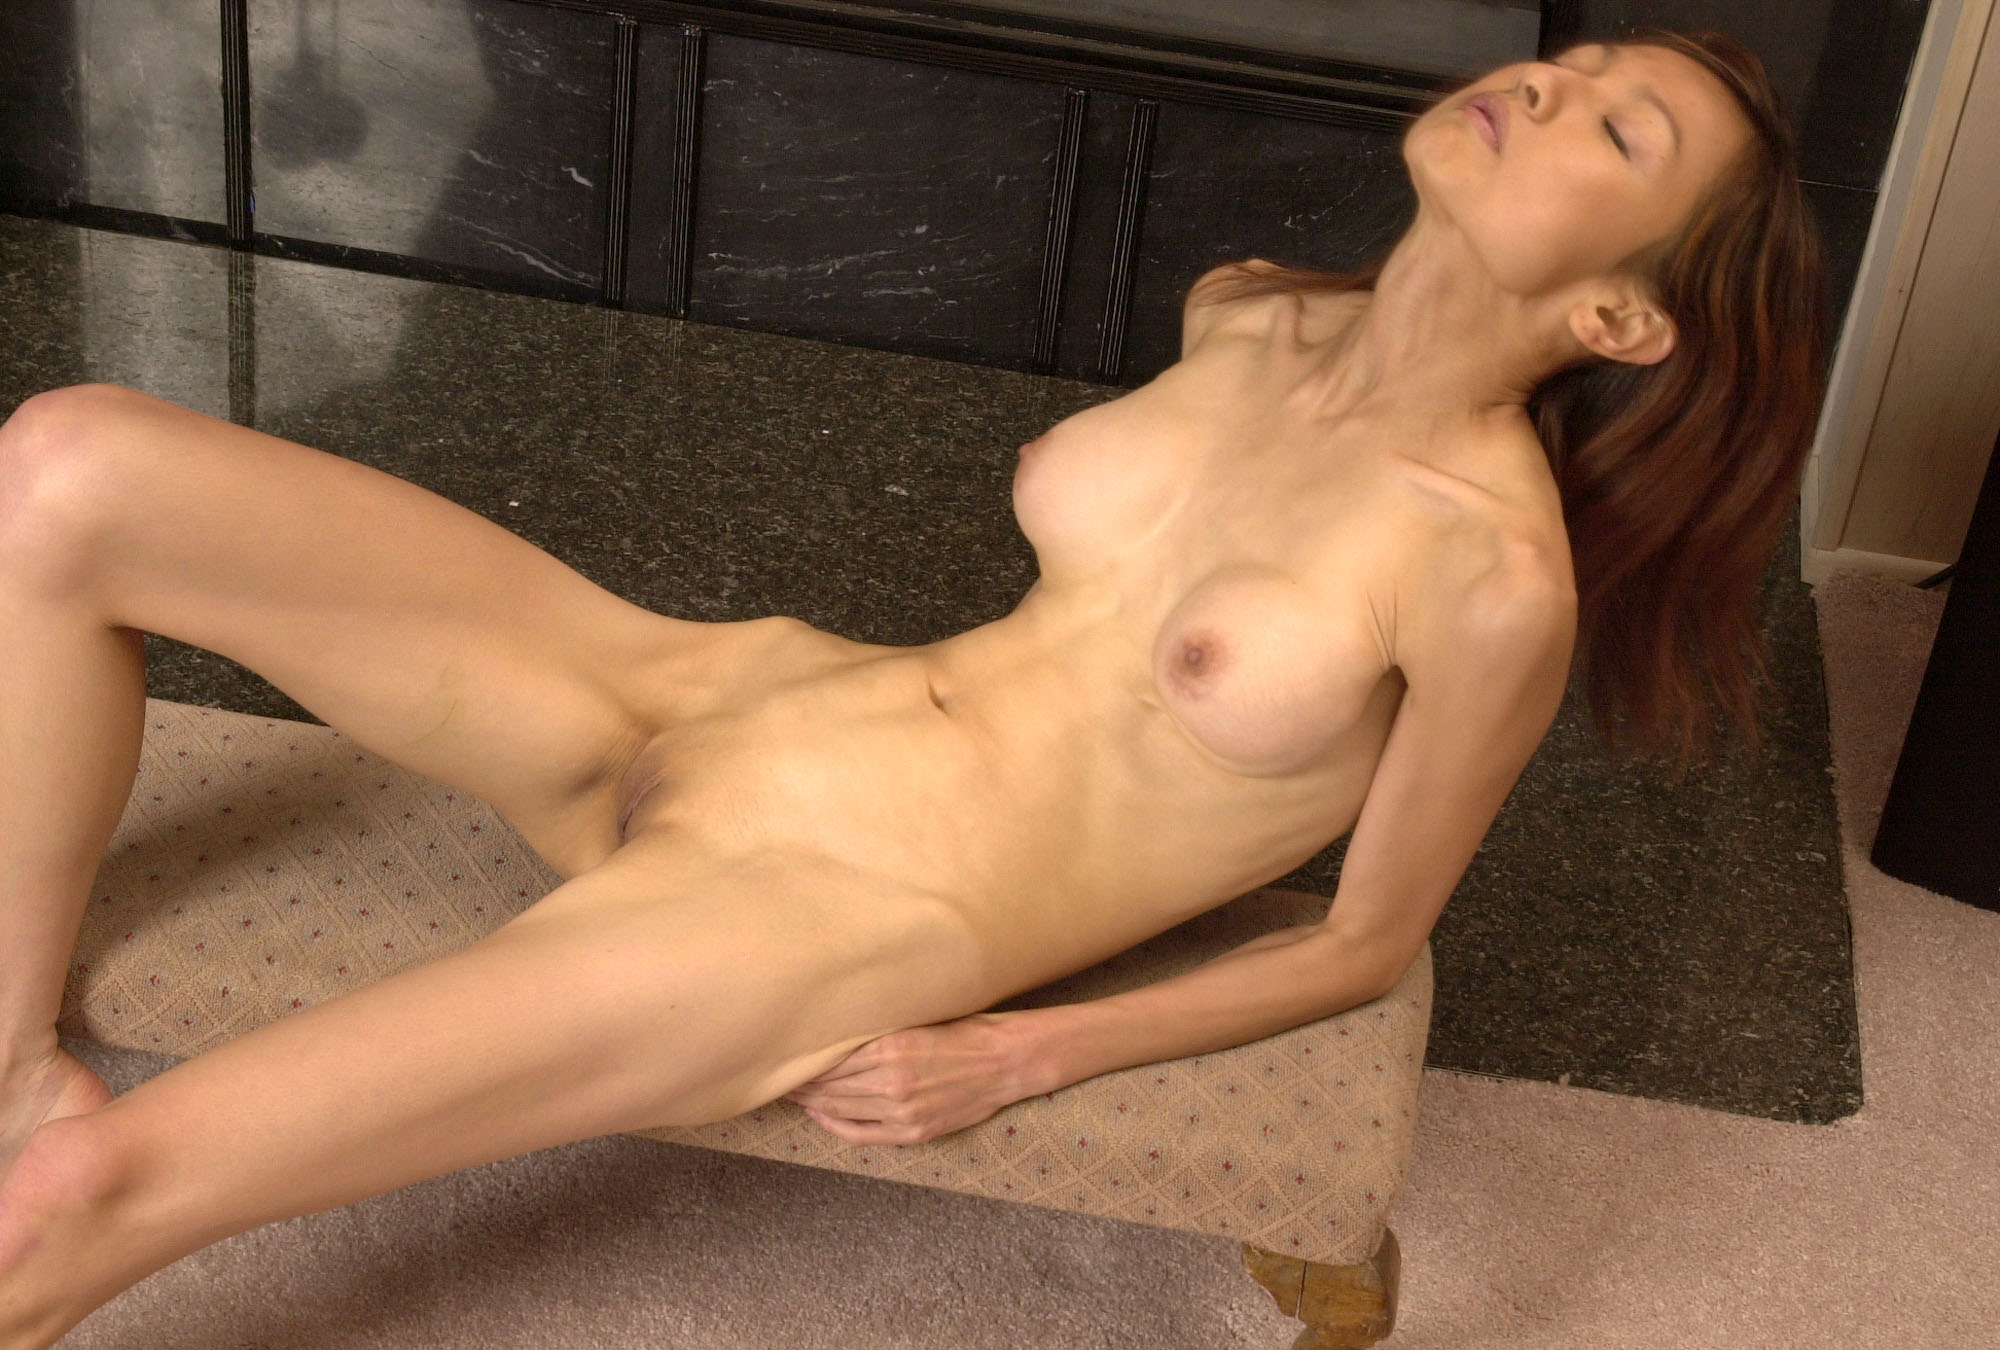 Anorexic nude hd video sex movies